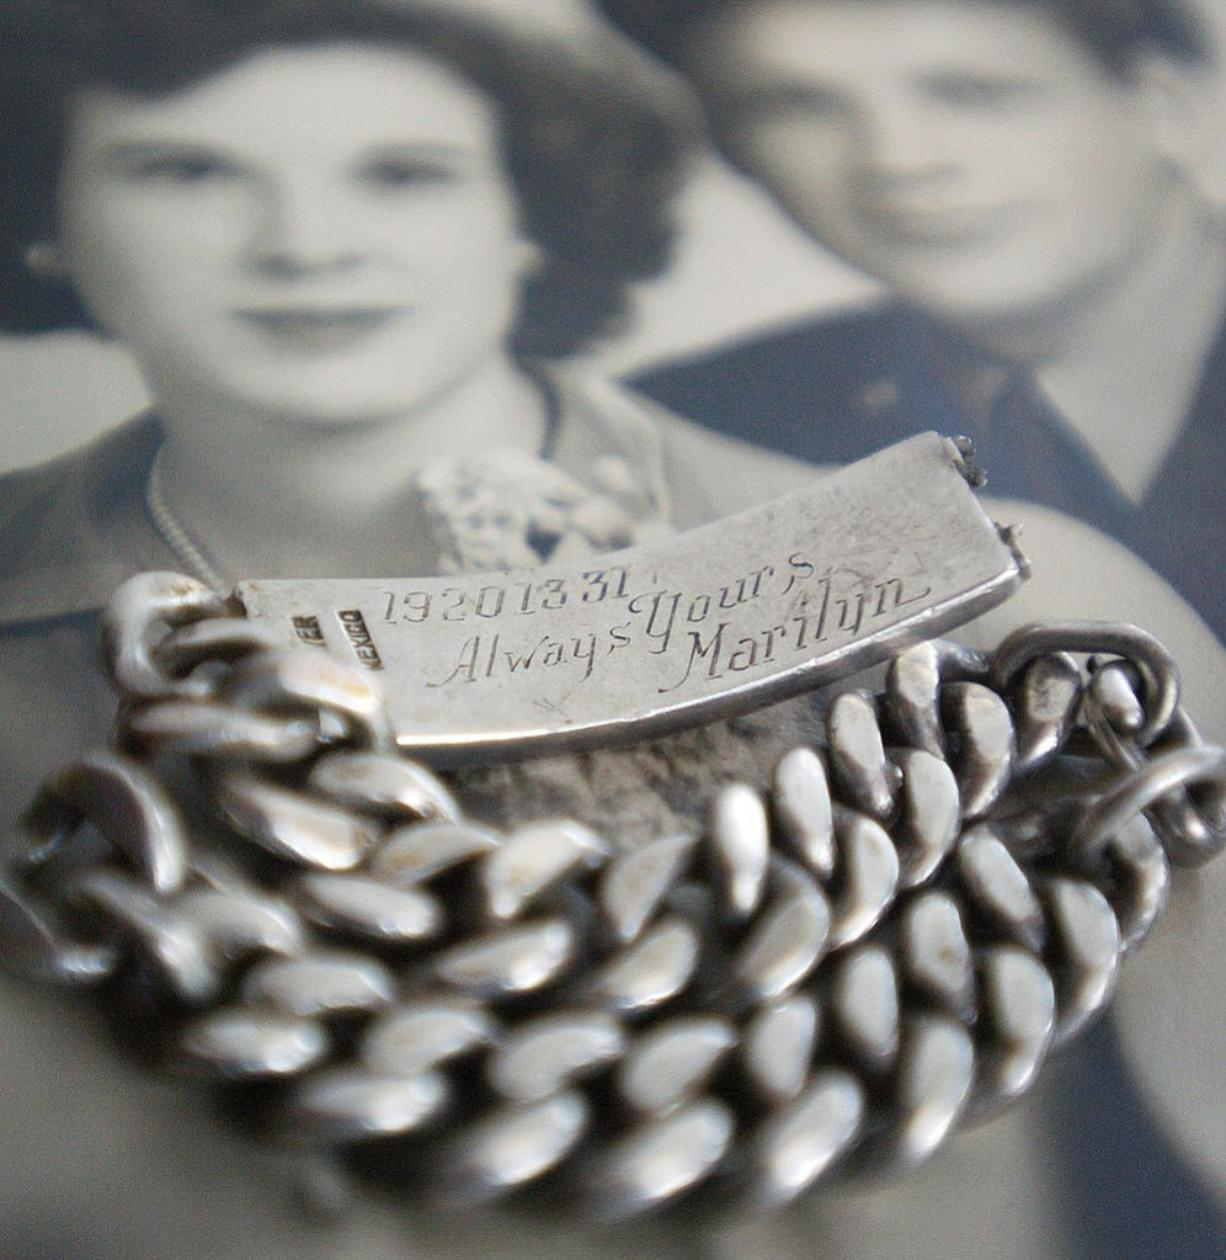 A bracelet given to airman Steve Memovich by his wife, Marilyn, was lost for decades. Here, it sits on a portrait of the couple from the 1940s.